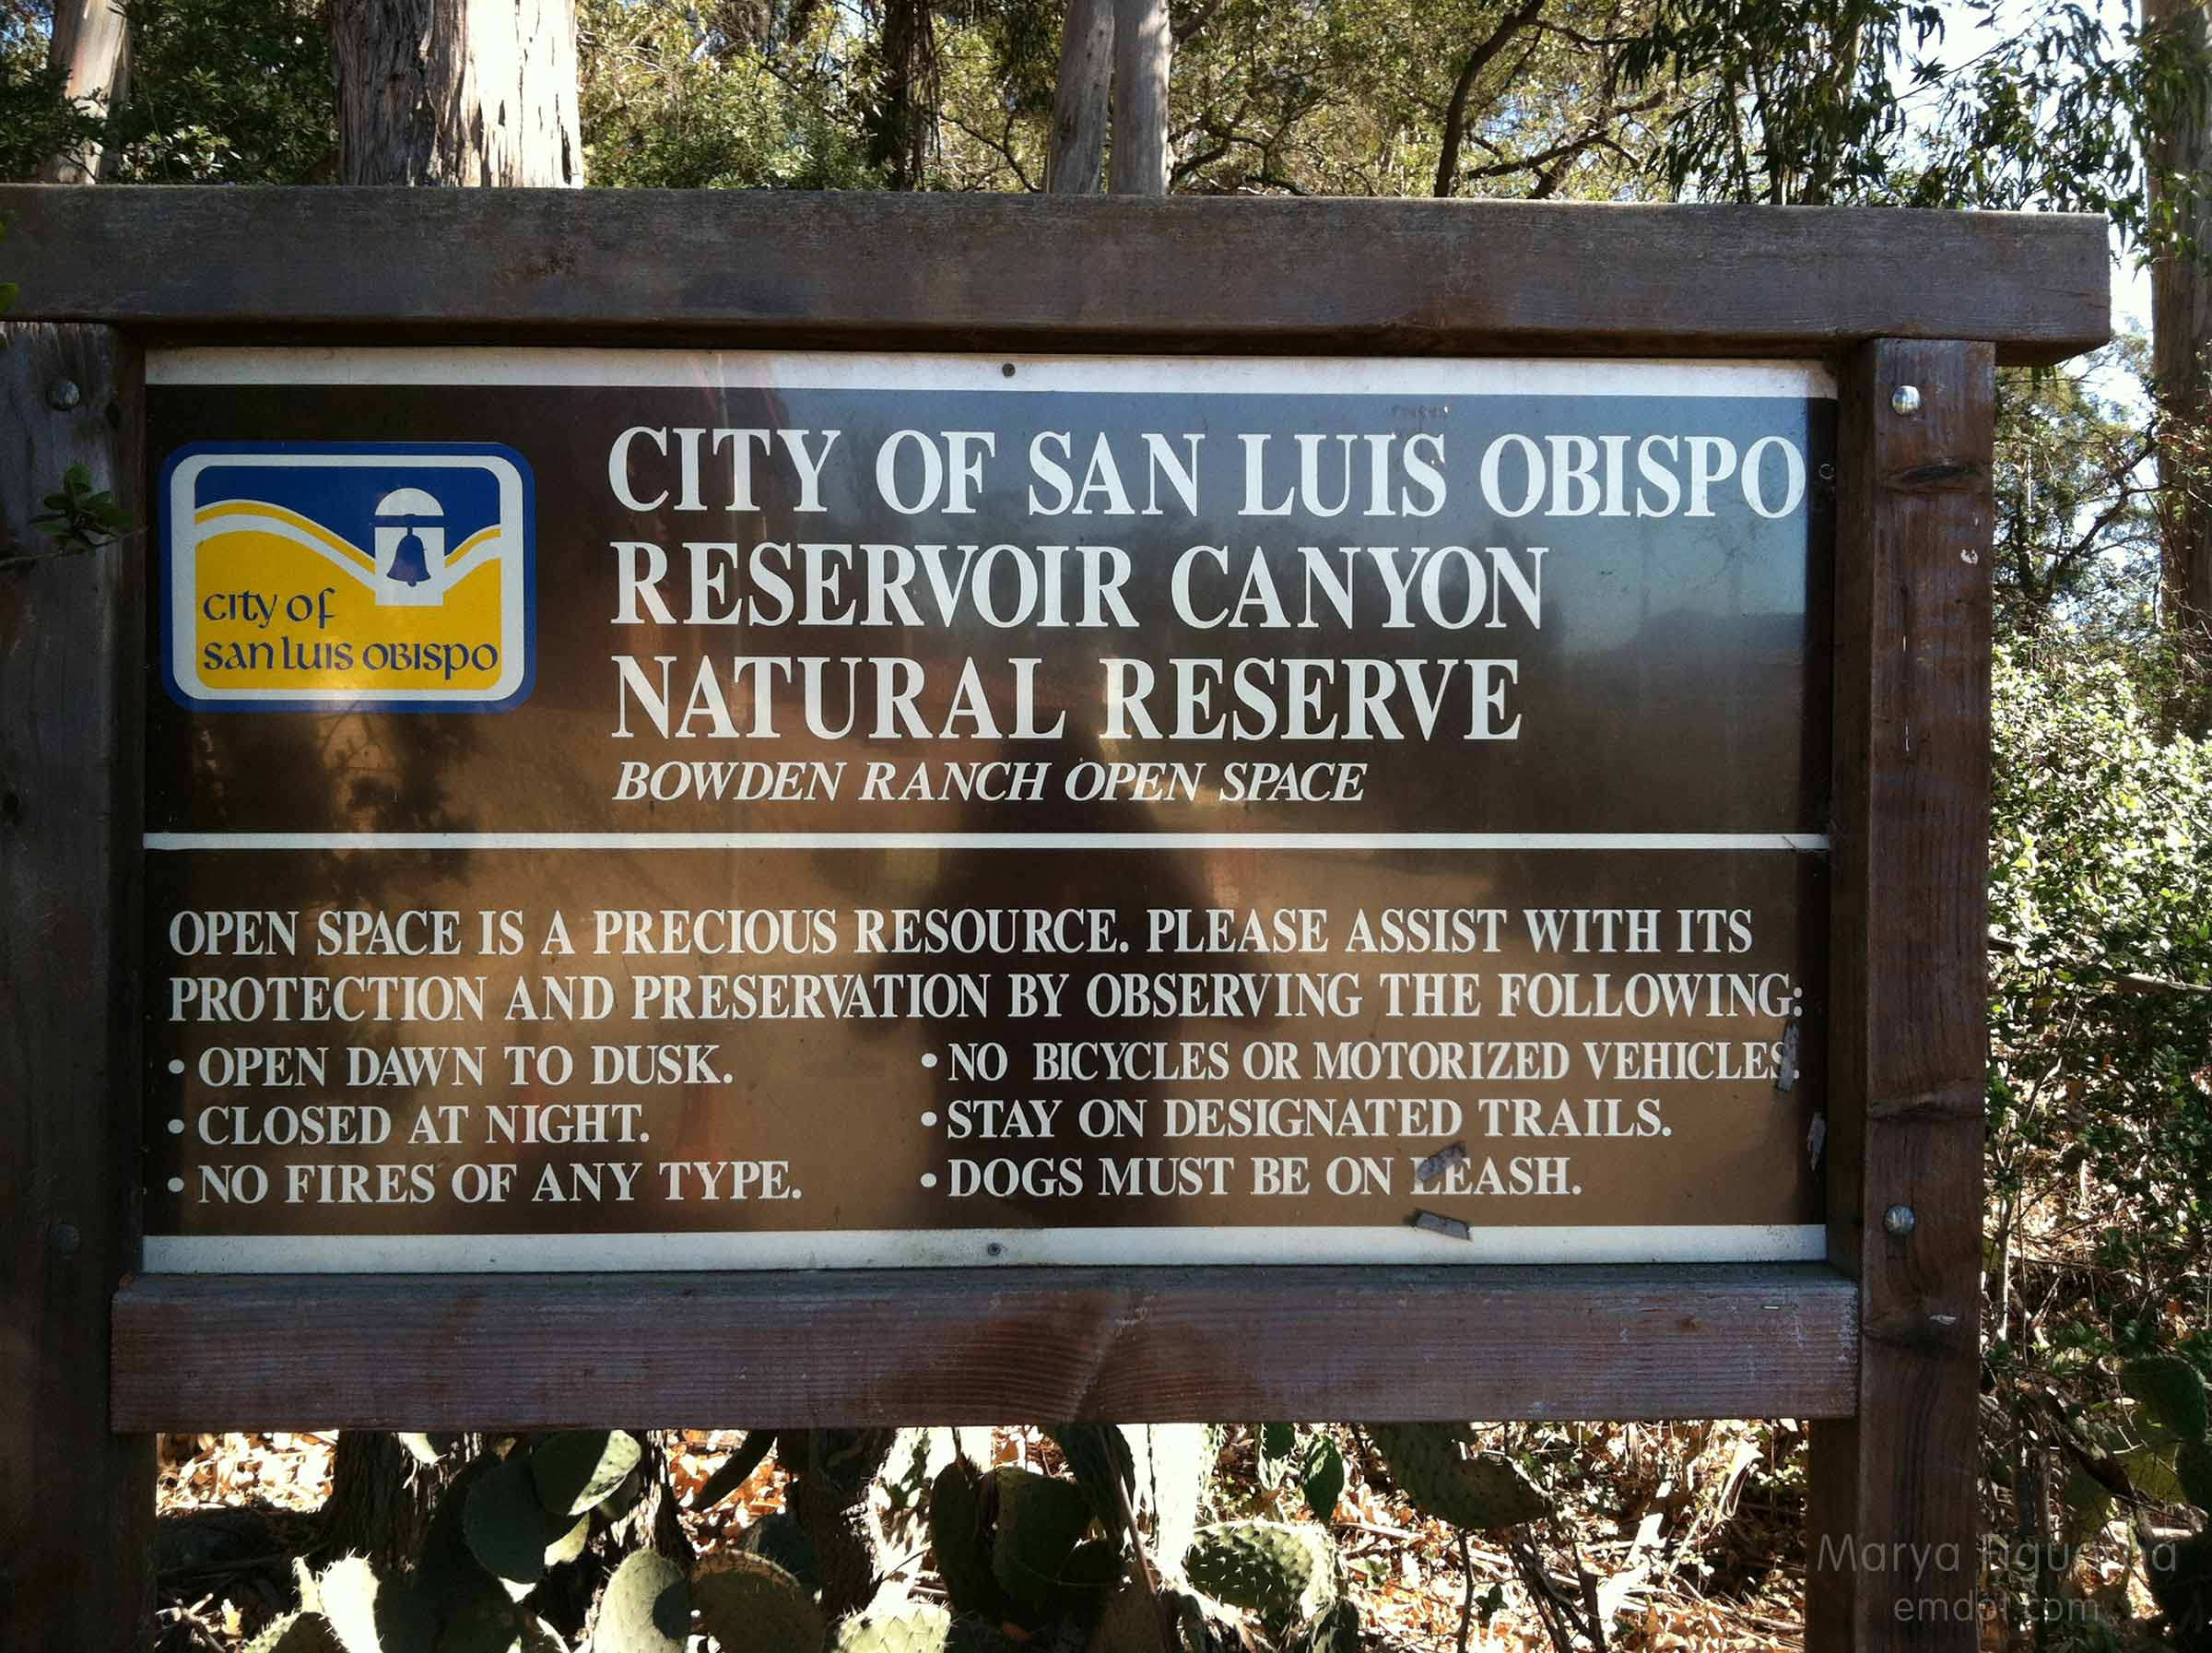 resevoir canyon natural reserve